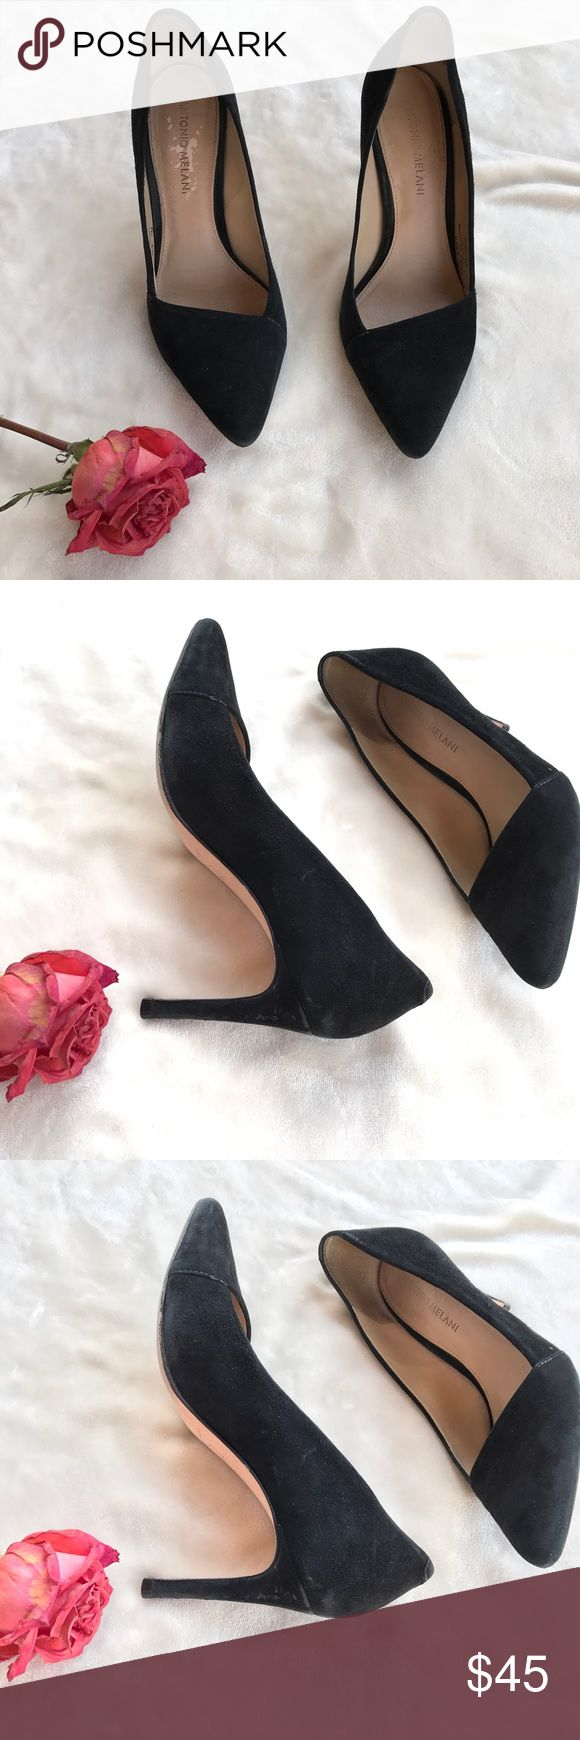 💕PROM shoes💕black suede heels Some scruffs (see pics) but so cute and stylish ANTONIO MELANI Shoes Heels